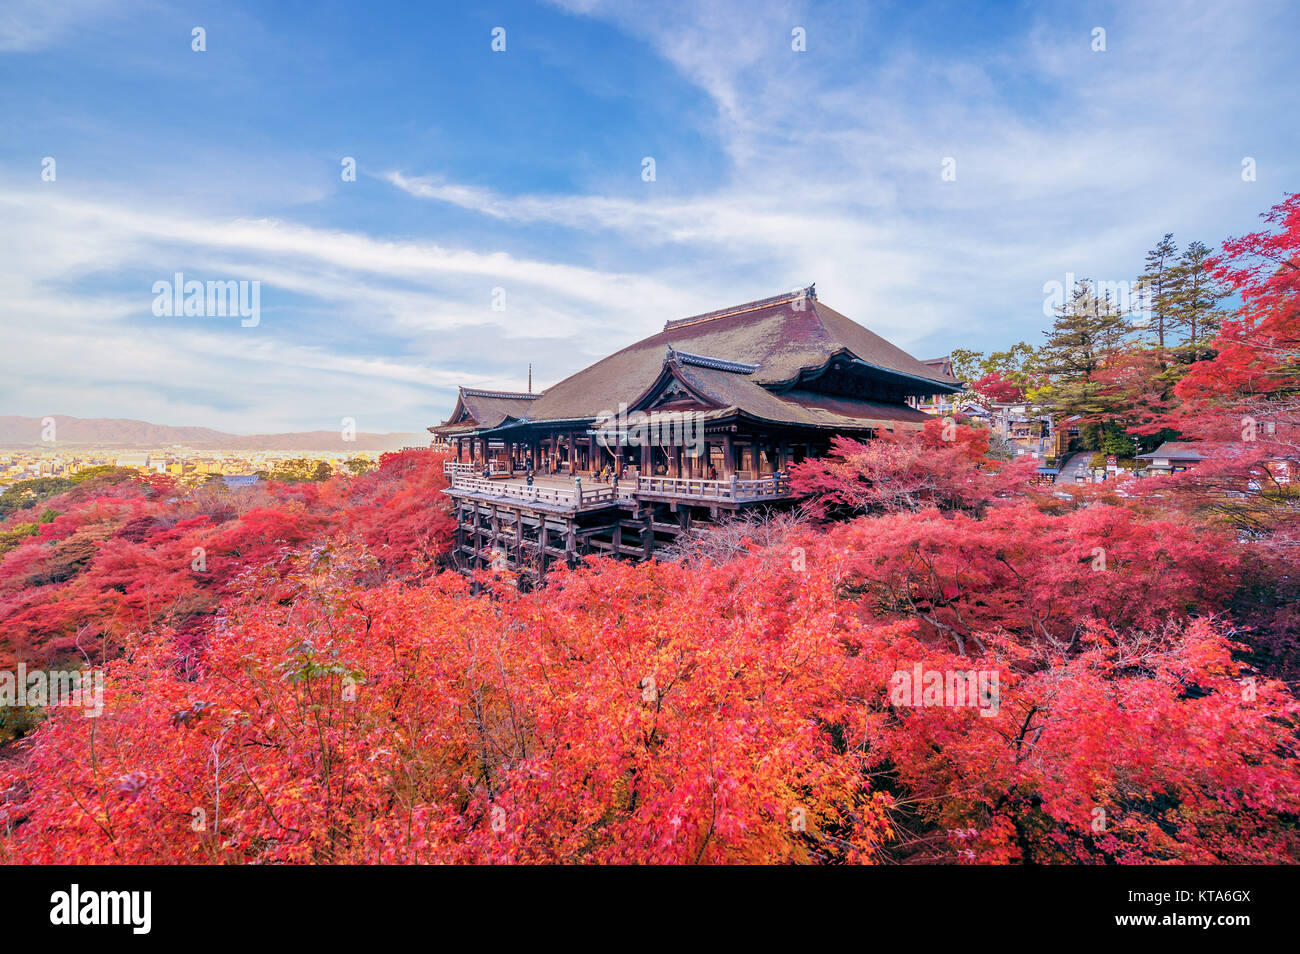 Kiyomizu-dera stage with fall colored leaves - Stock Image